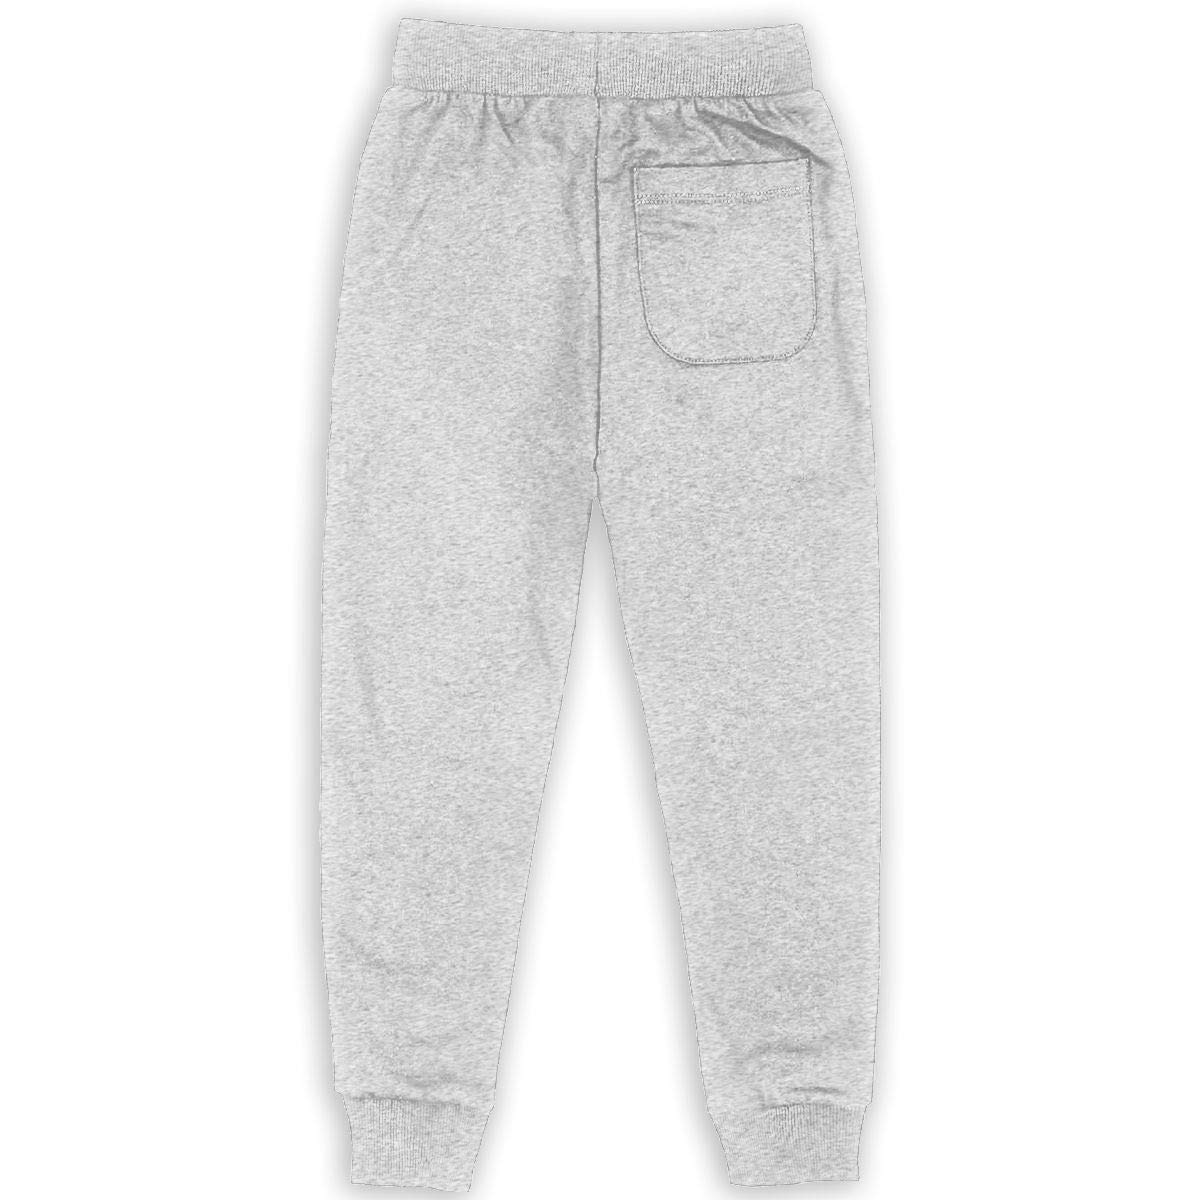 Paper Crane Boys Cotton Sweatpants Classic Joggers Pants Active Pants